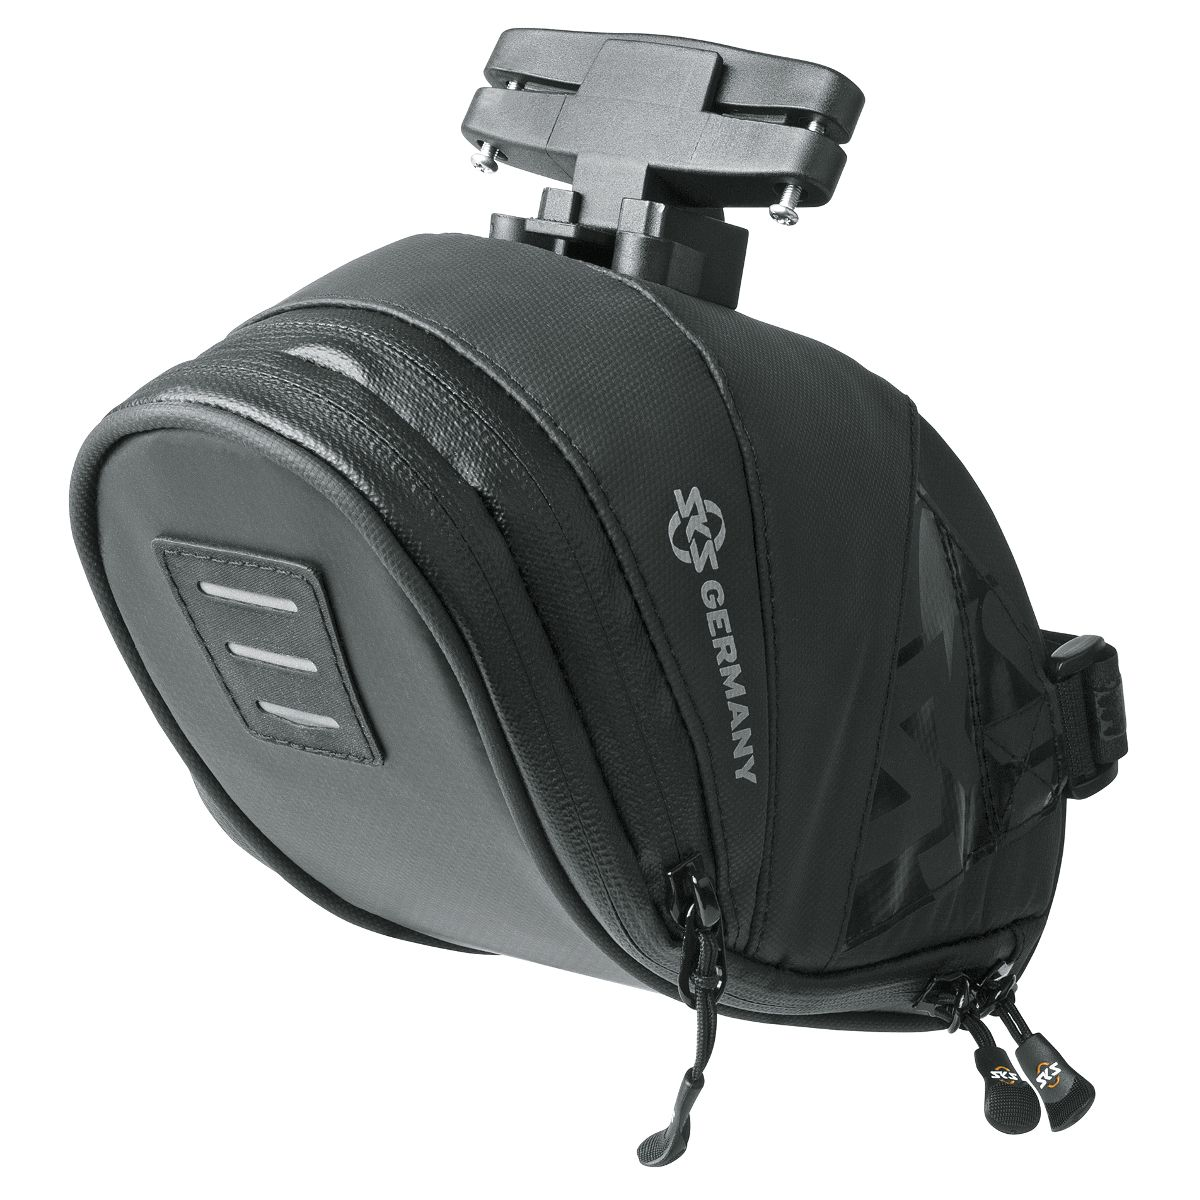 Explorer Click 1800 saddle bag